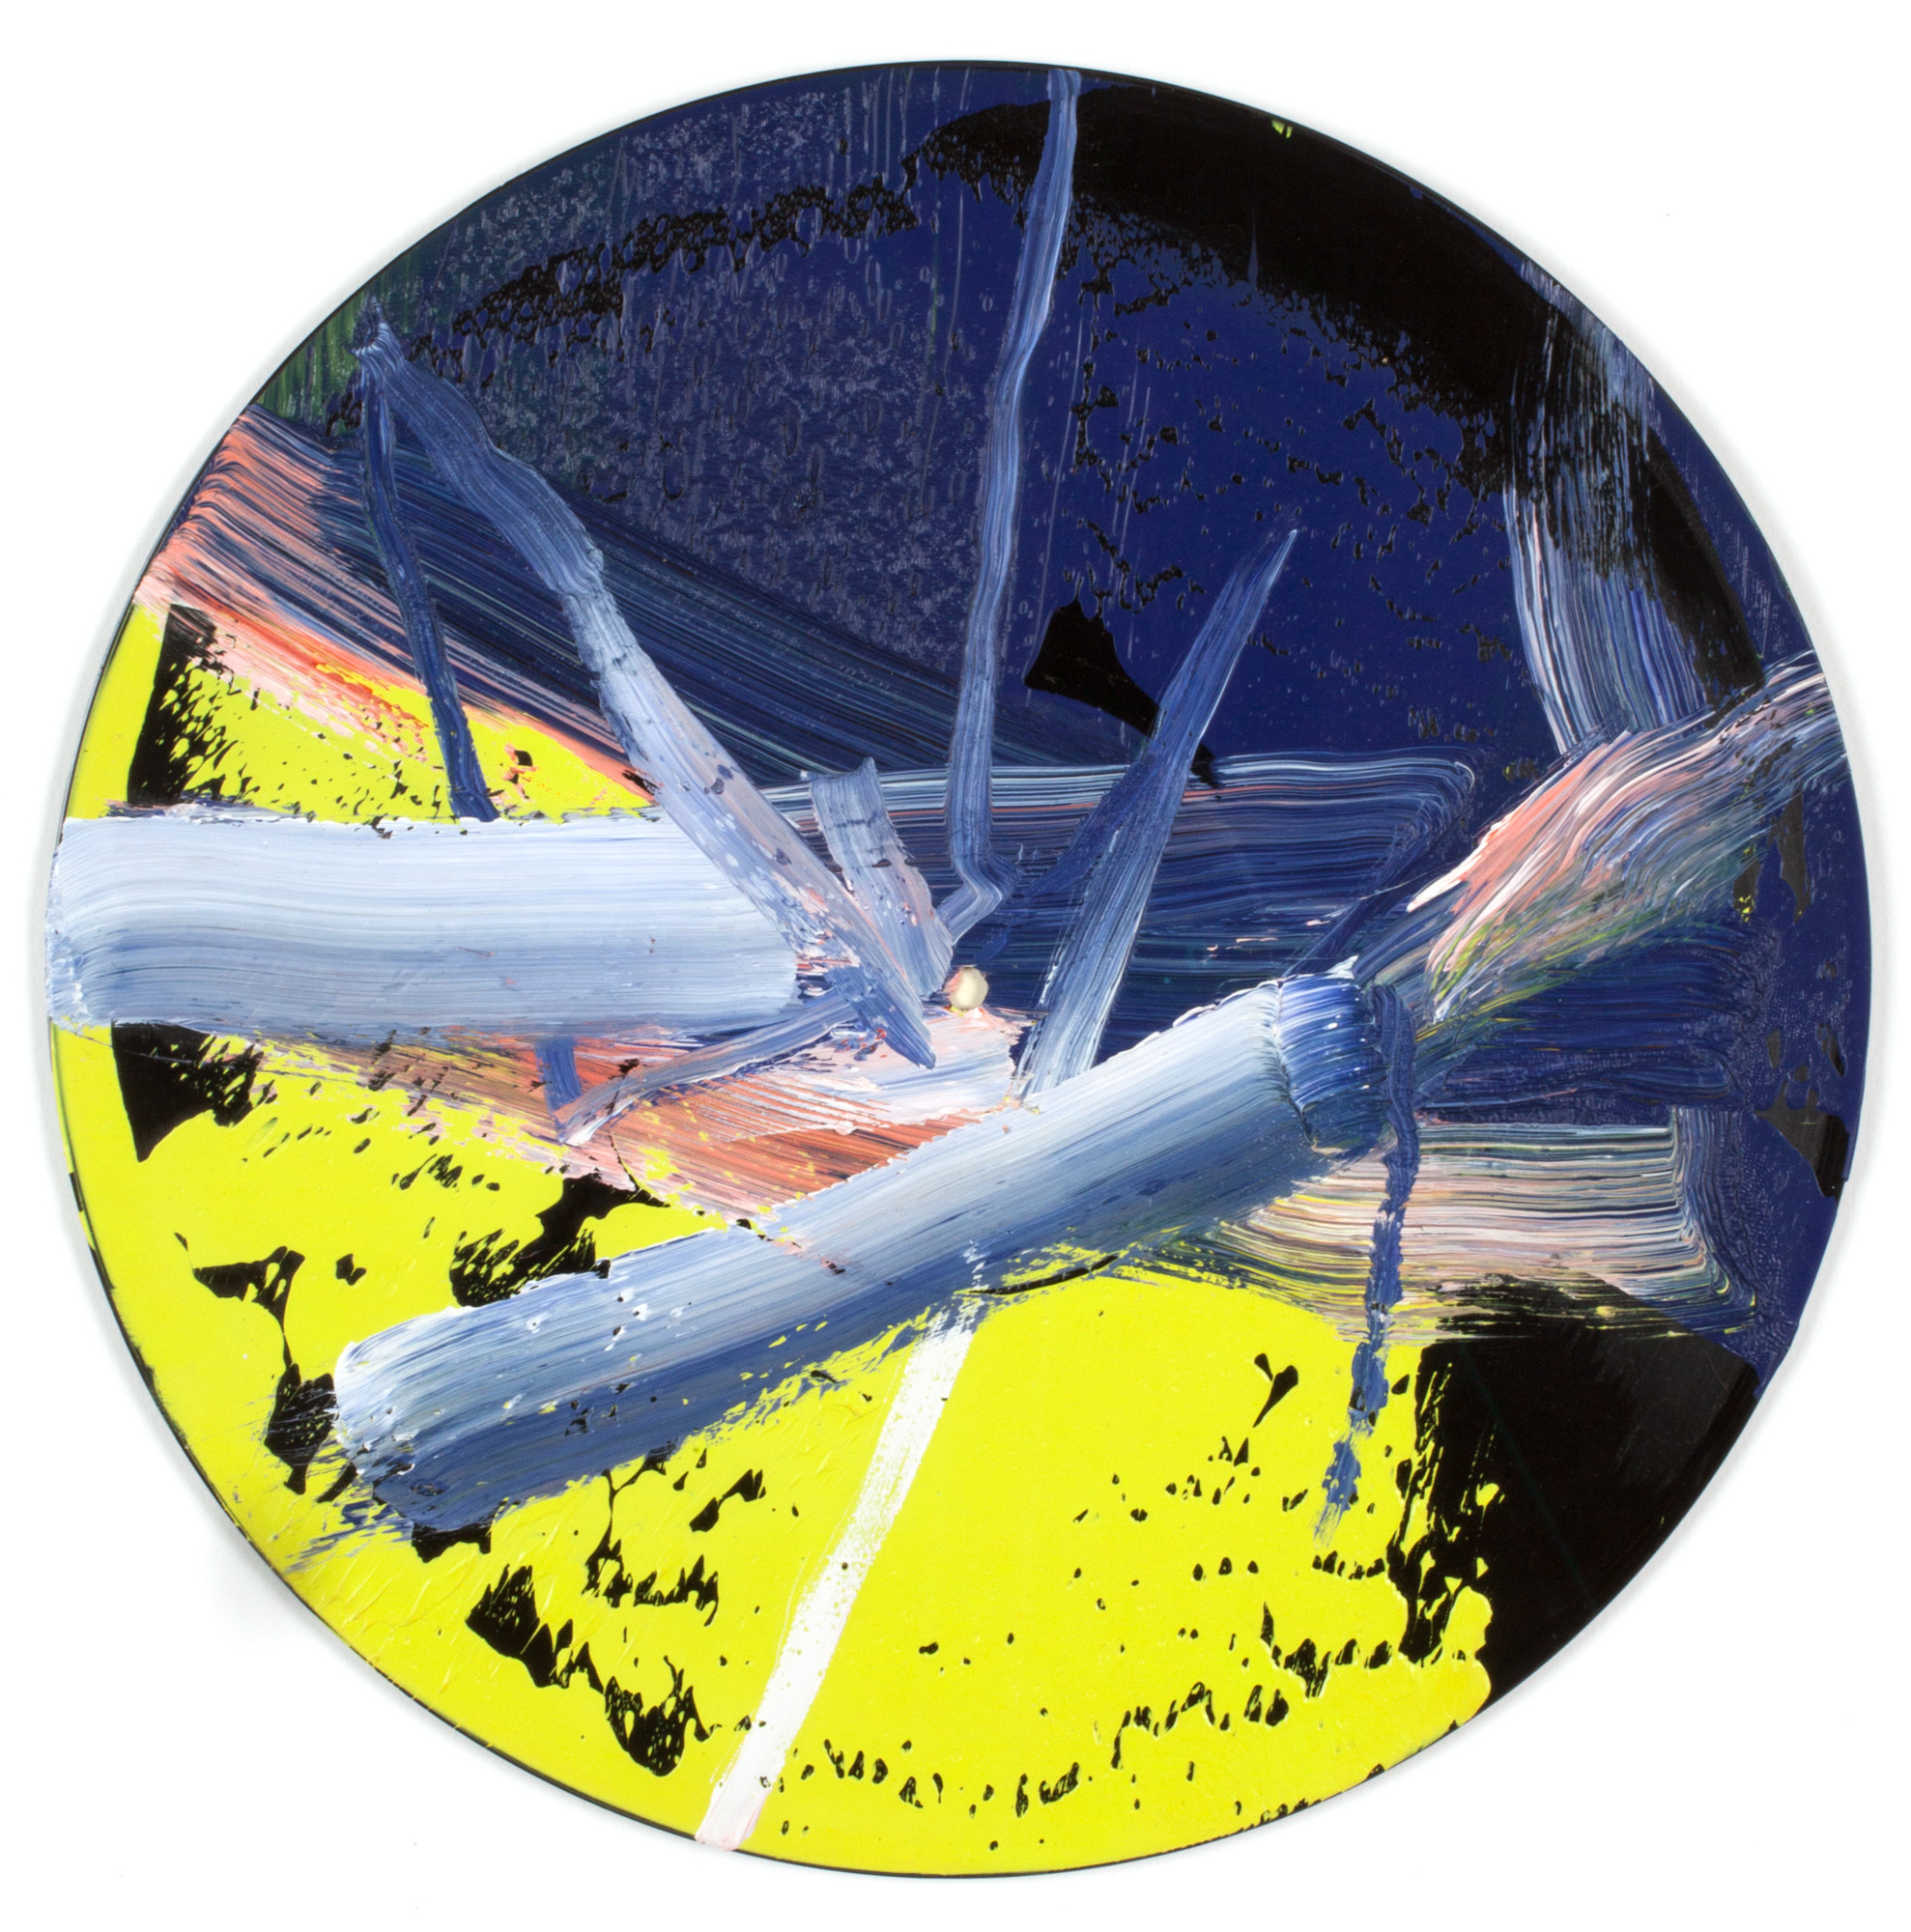 GERHARD RICHTER, Goldberg-Variationen (Butin 060), 1984 oil on vinyl record